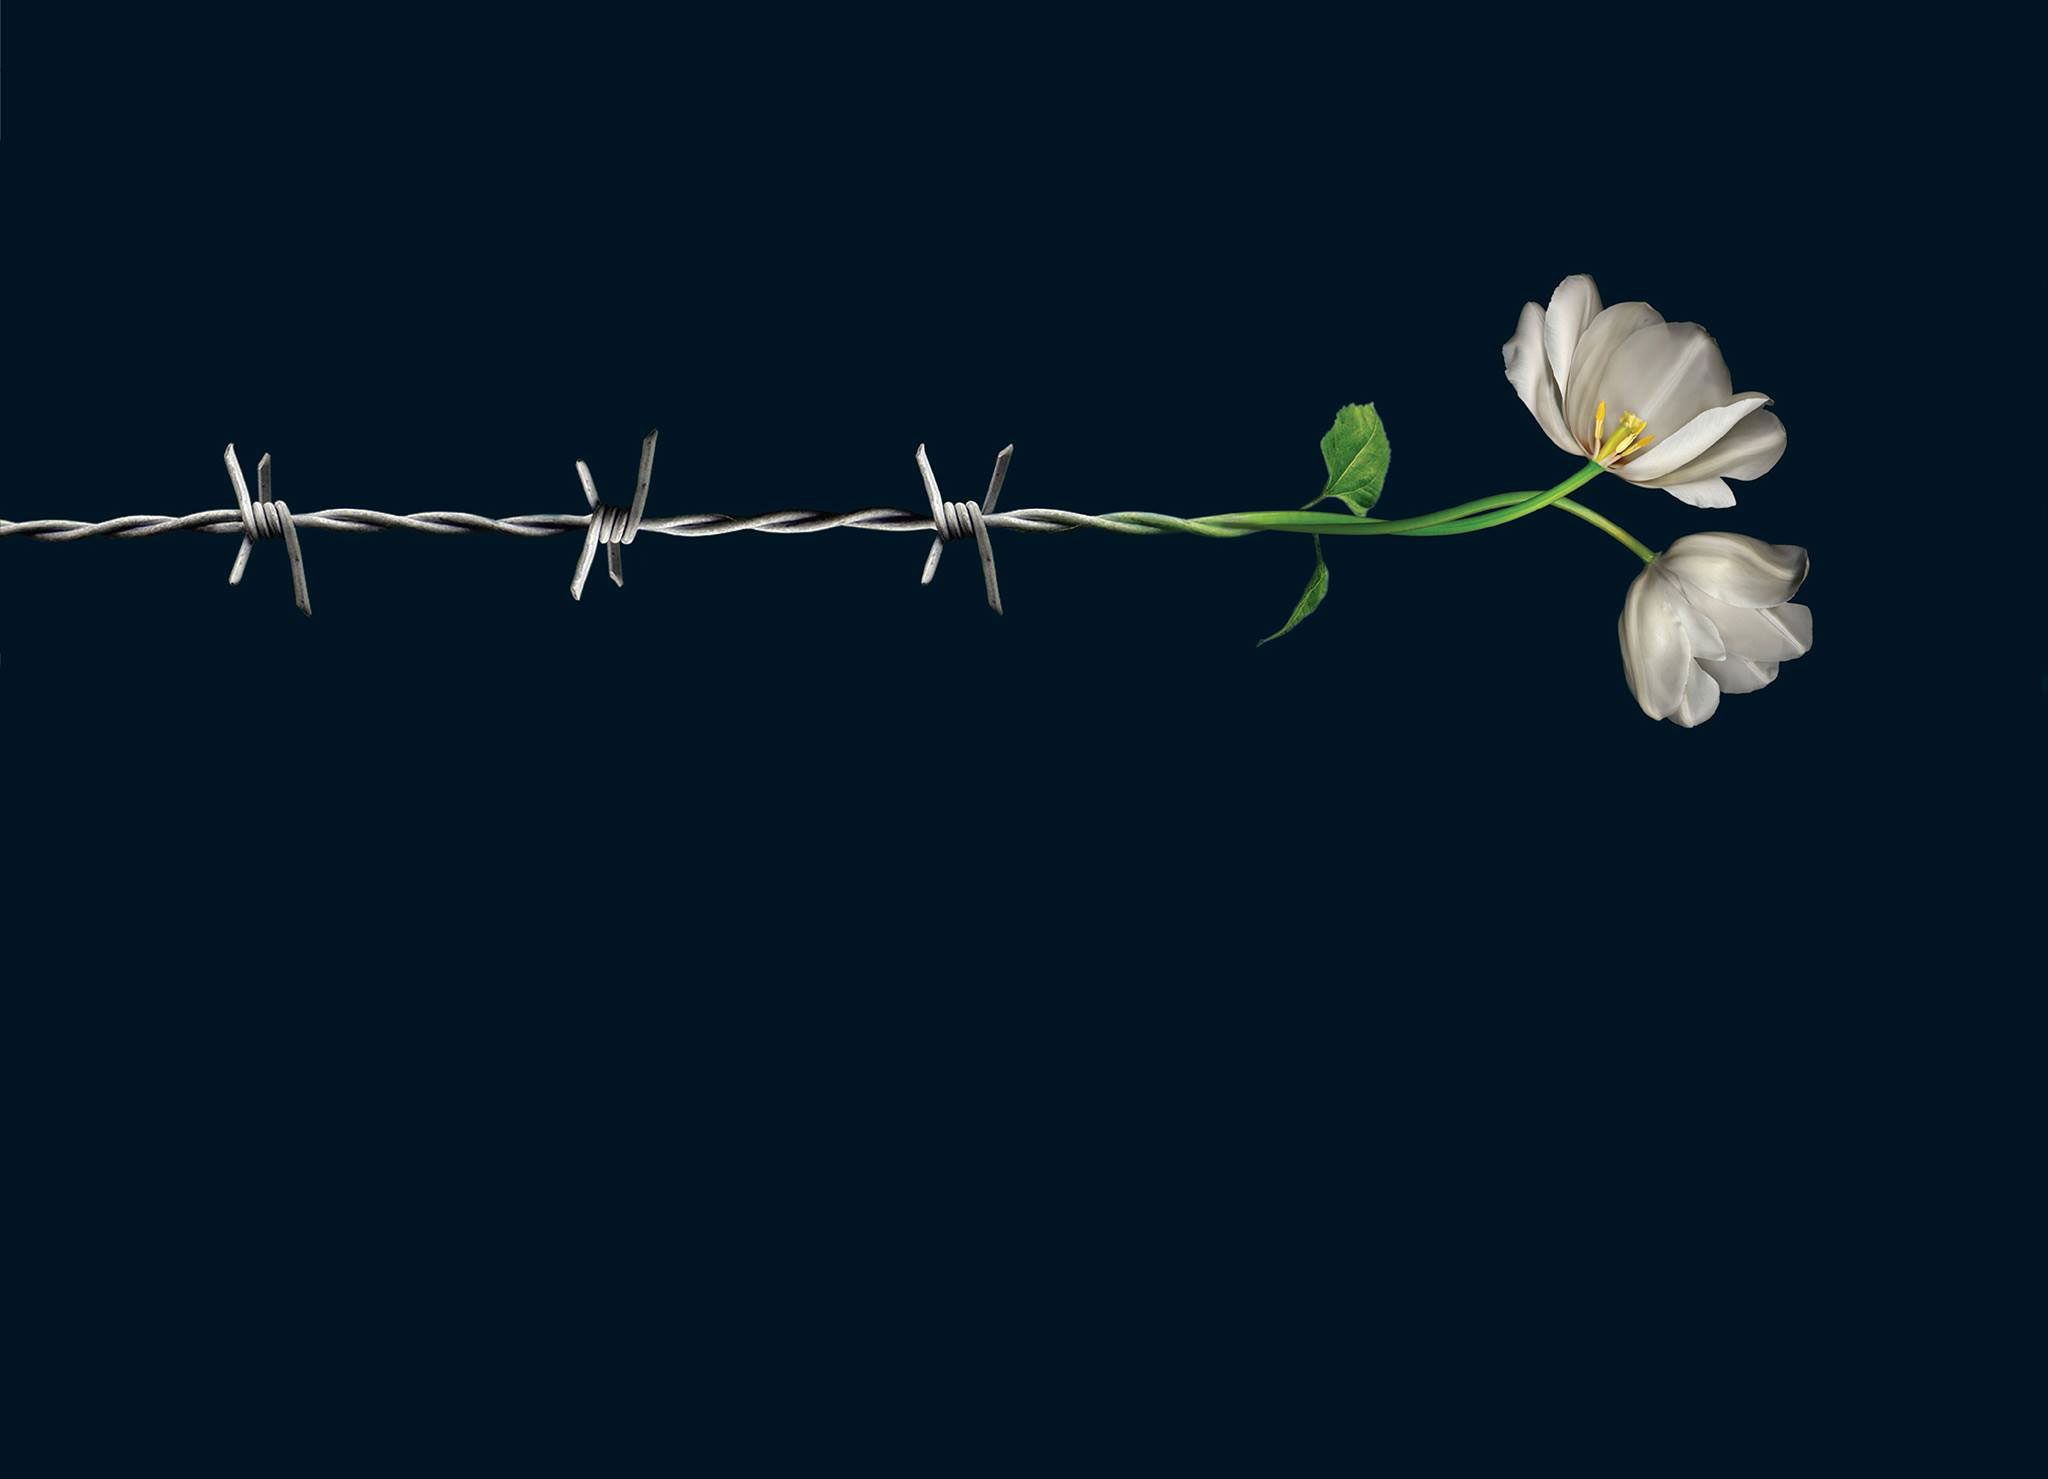 A flower growing out of barbed wire